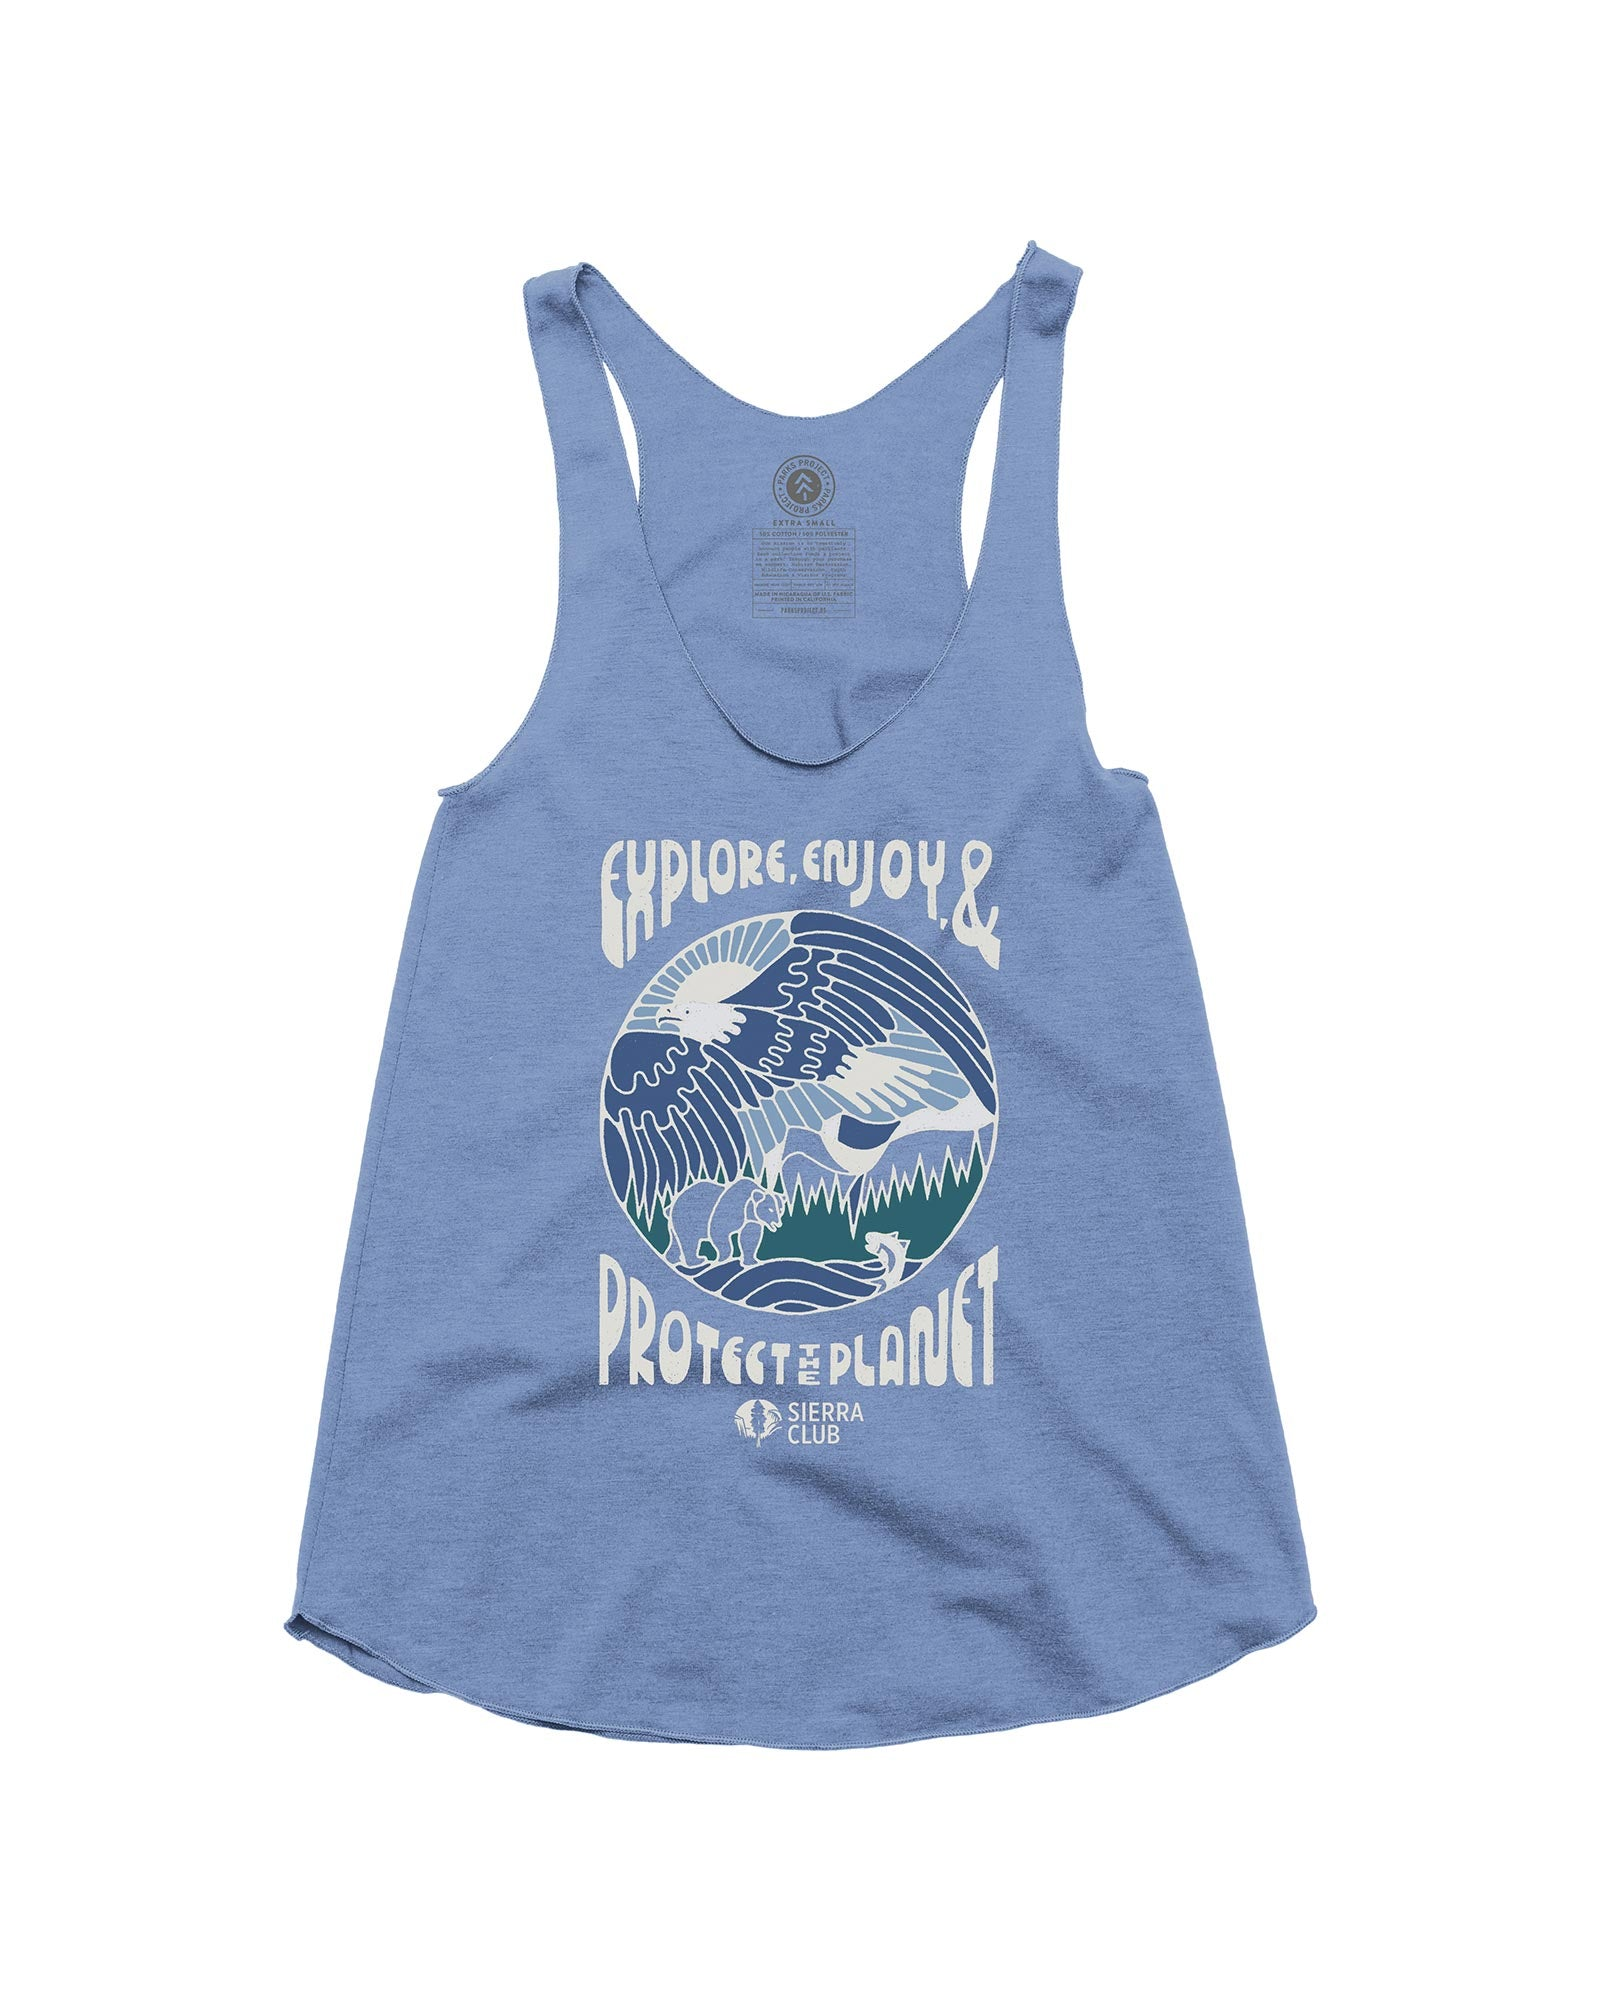 Sierra Club Racerback | Parks Project | National Park Racerback